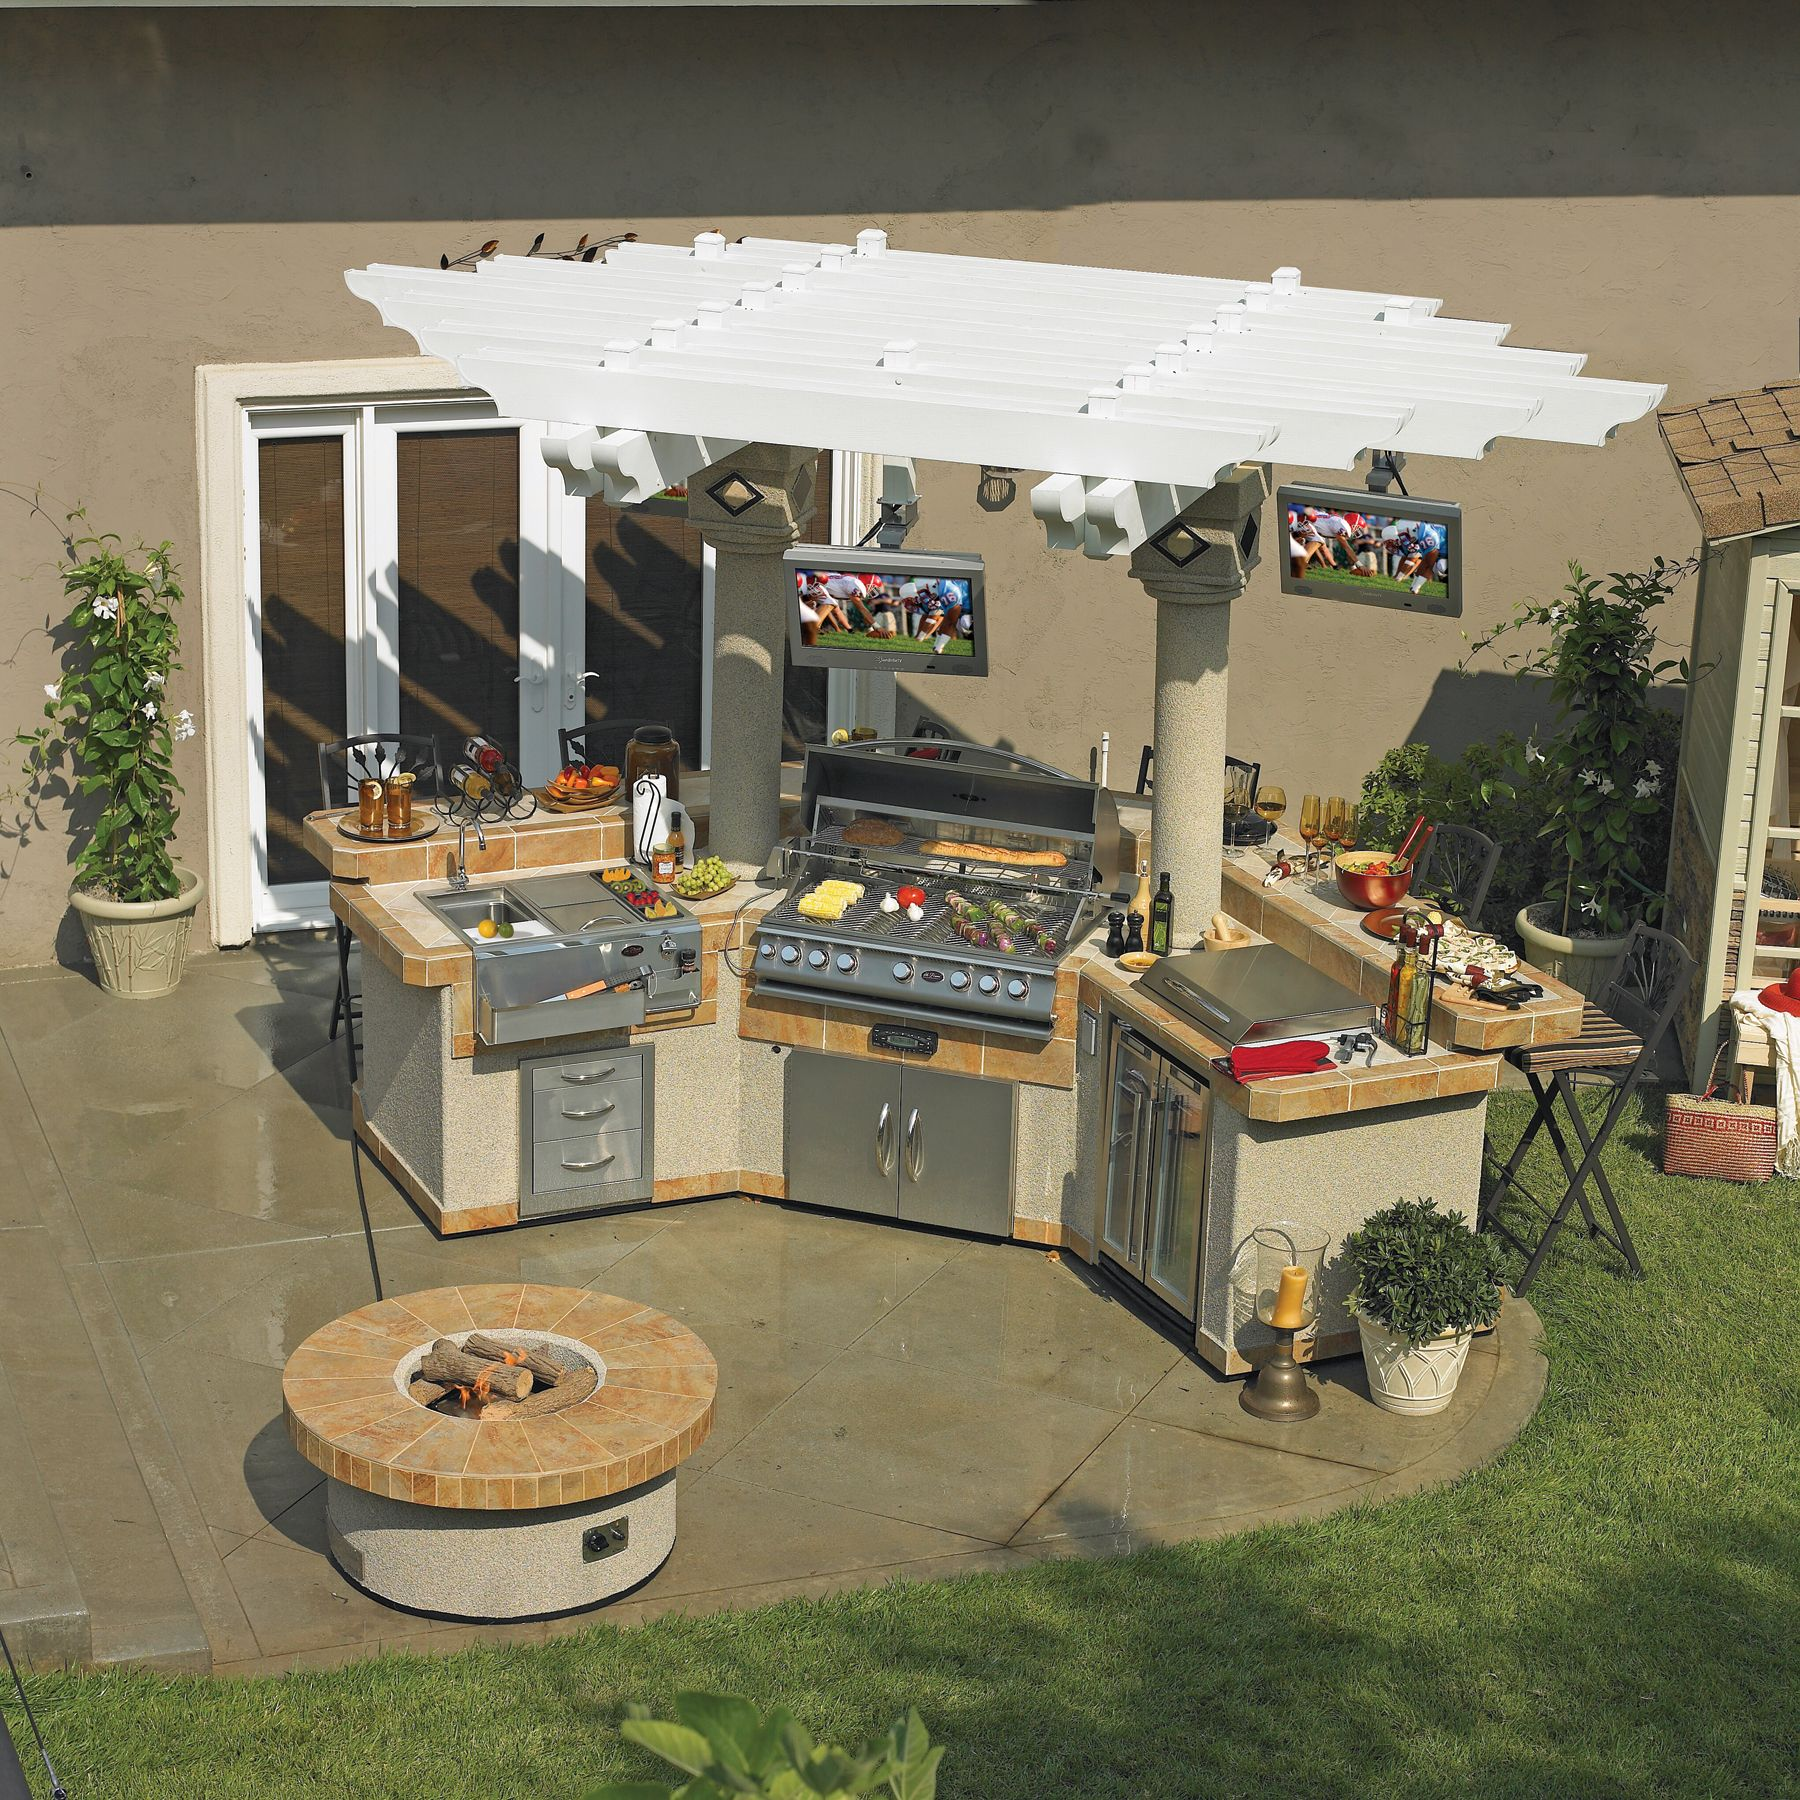 Sun on your face, steak in your belly. All you need: www.DIYBBQ.com  DIY BBQ  Pinterest ...